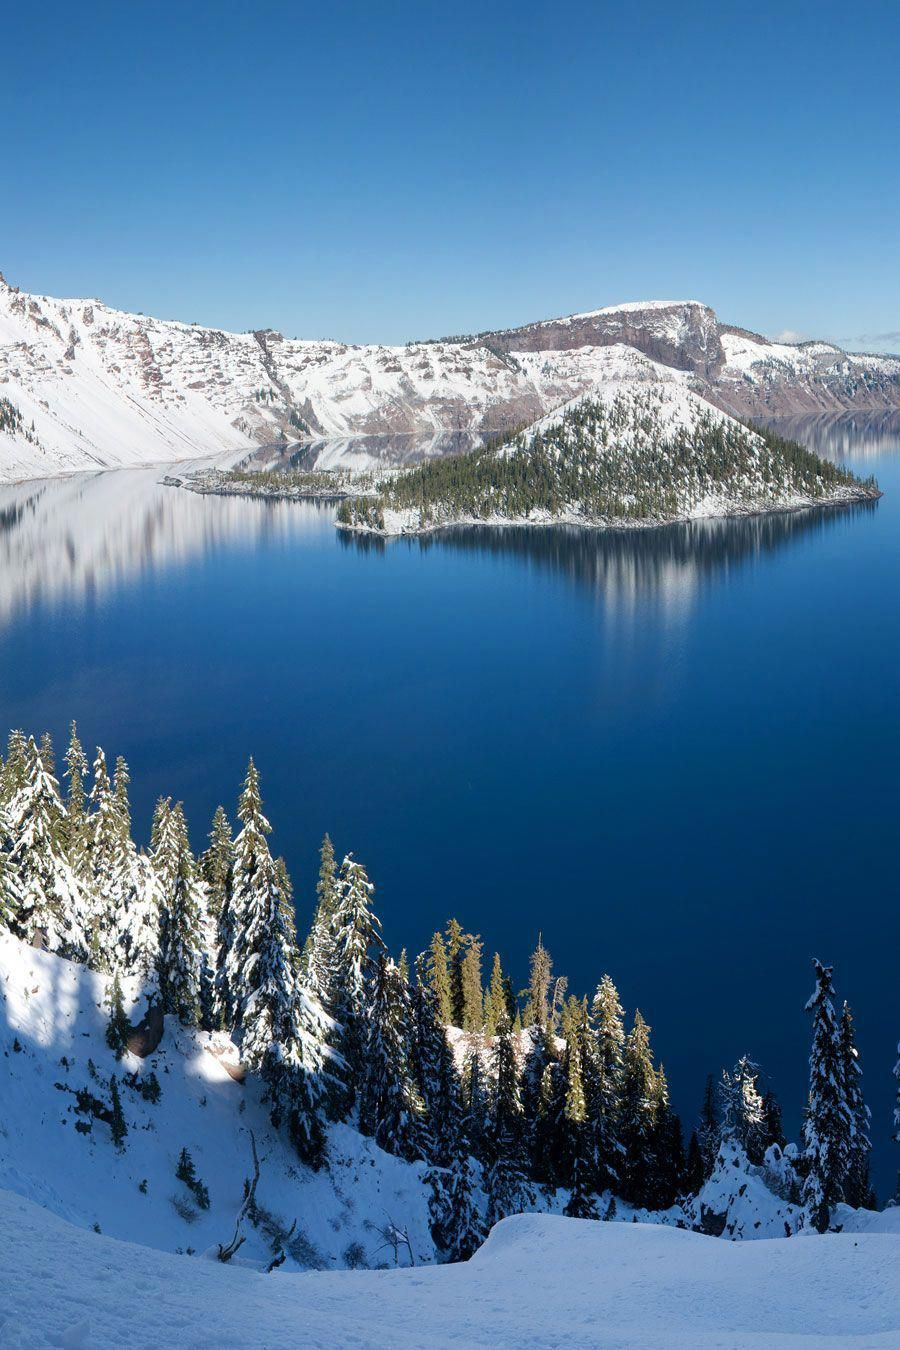 Visiting Crater Lake National Park, Oregon: This crystal clear mountaintop lake formed 7,700 years ago when a volcanic eruption blew the top off of Mount Mazama. The winter is LONG at Crater Lake and the area gets a ton of snow, so it can be hard to time your trip so you don't get there during a blizzard. (I keep trying...) #craterlakenationalpark Visiting Crater Lake National Park, Oregon: This crystal clear mountaintop lake formed 7,700 years ago when a volcanic eruption blew the top off of Mo #craterlakenationalpark